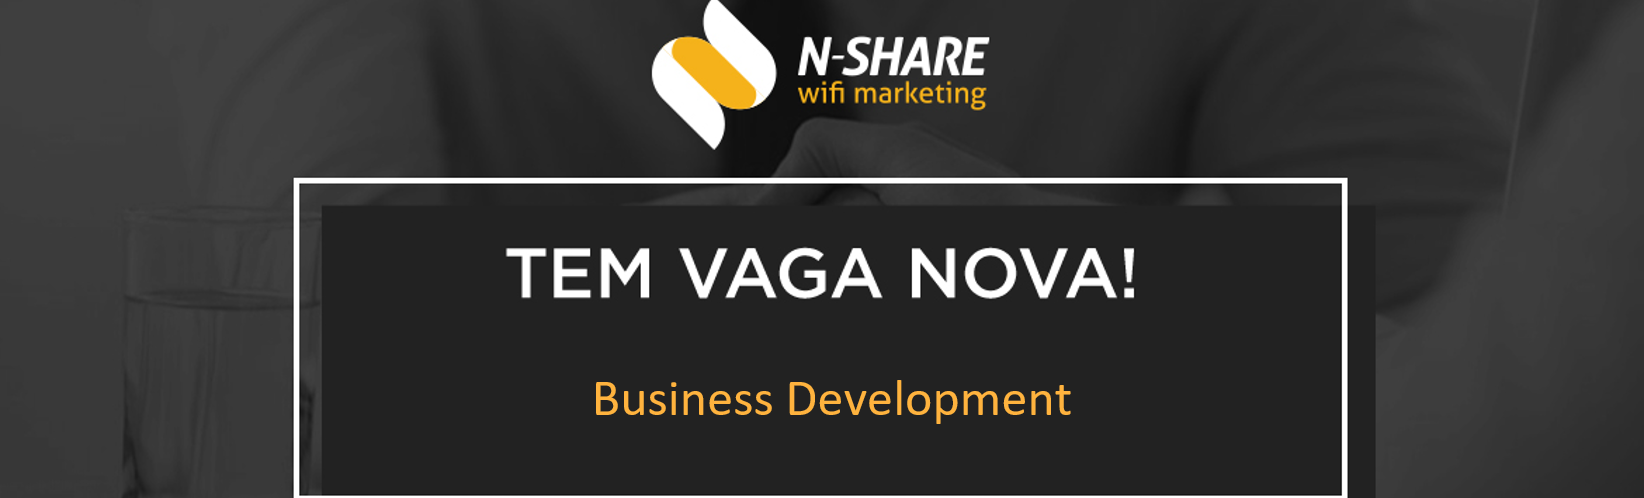 [N SHARE] - Business Development